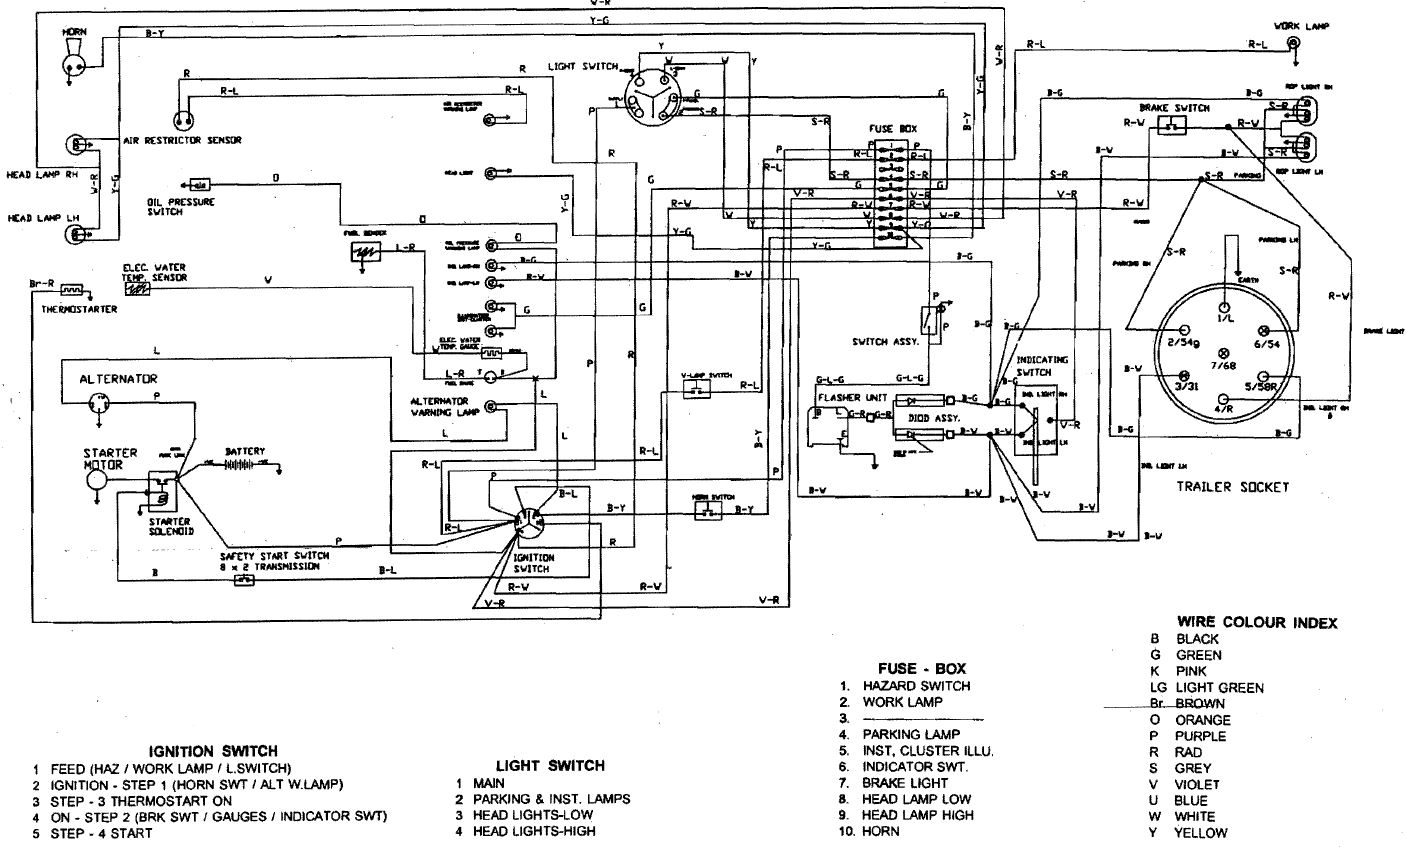 ignition switch wiring diagramAlternator Wiring Diagram Brake Light Circuit Diagram Simple Custom #16